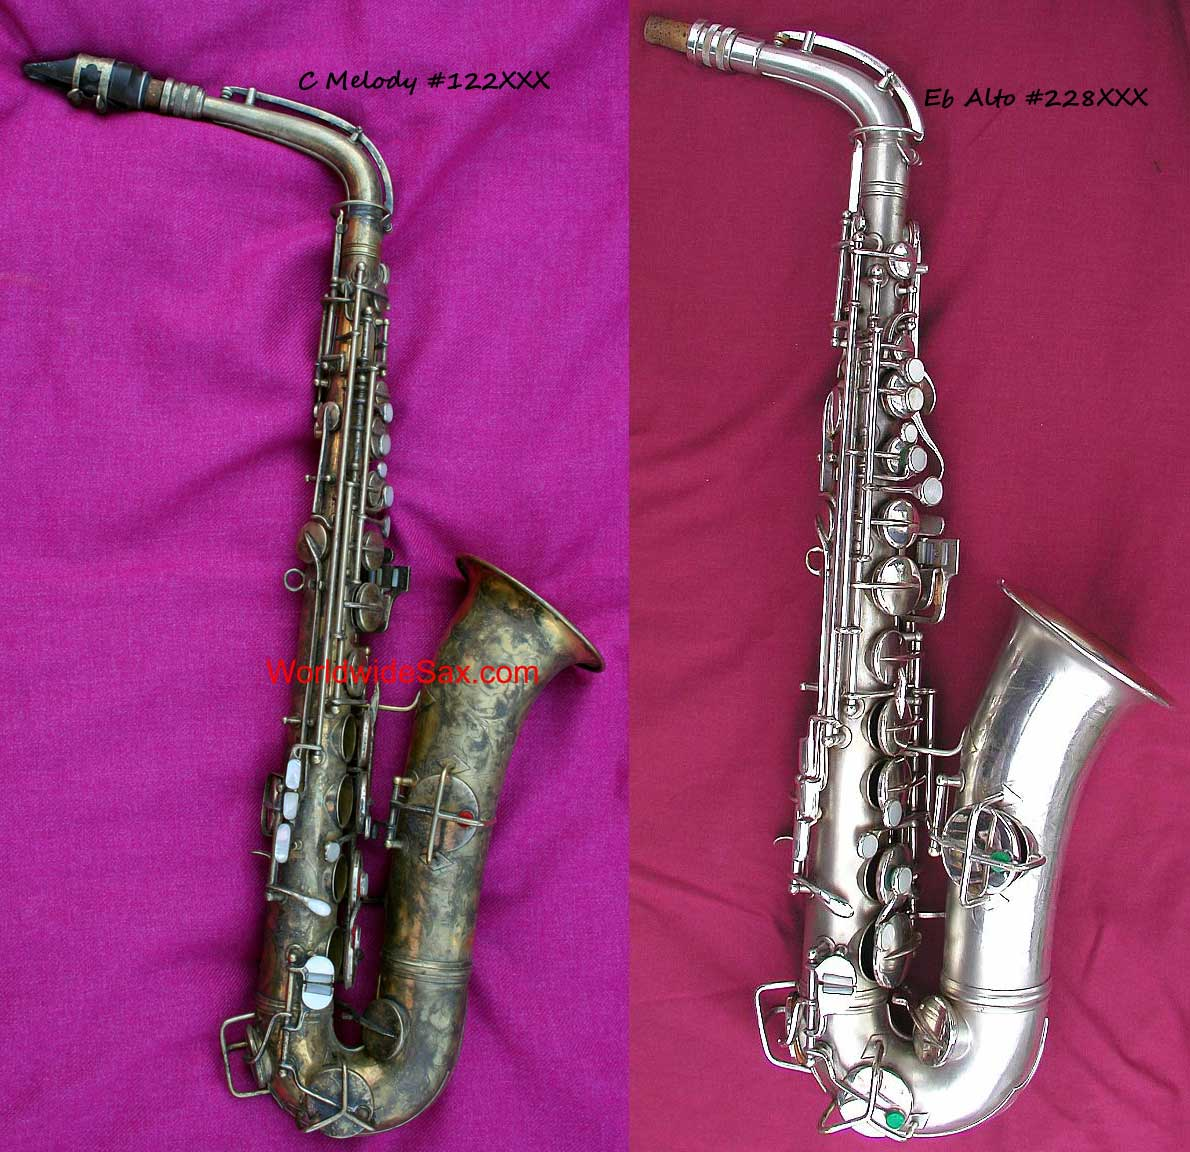 How can you tell a C melody from a Bb tenor sax, Conn straight-neck C melody sax, Conn alto sax, New Wonder Series